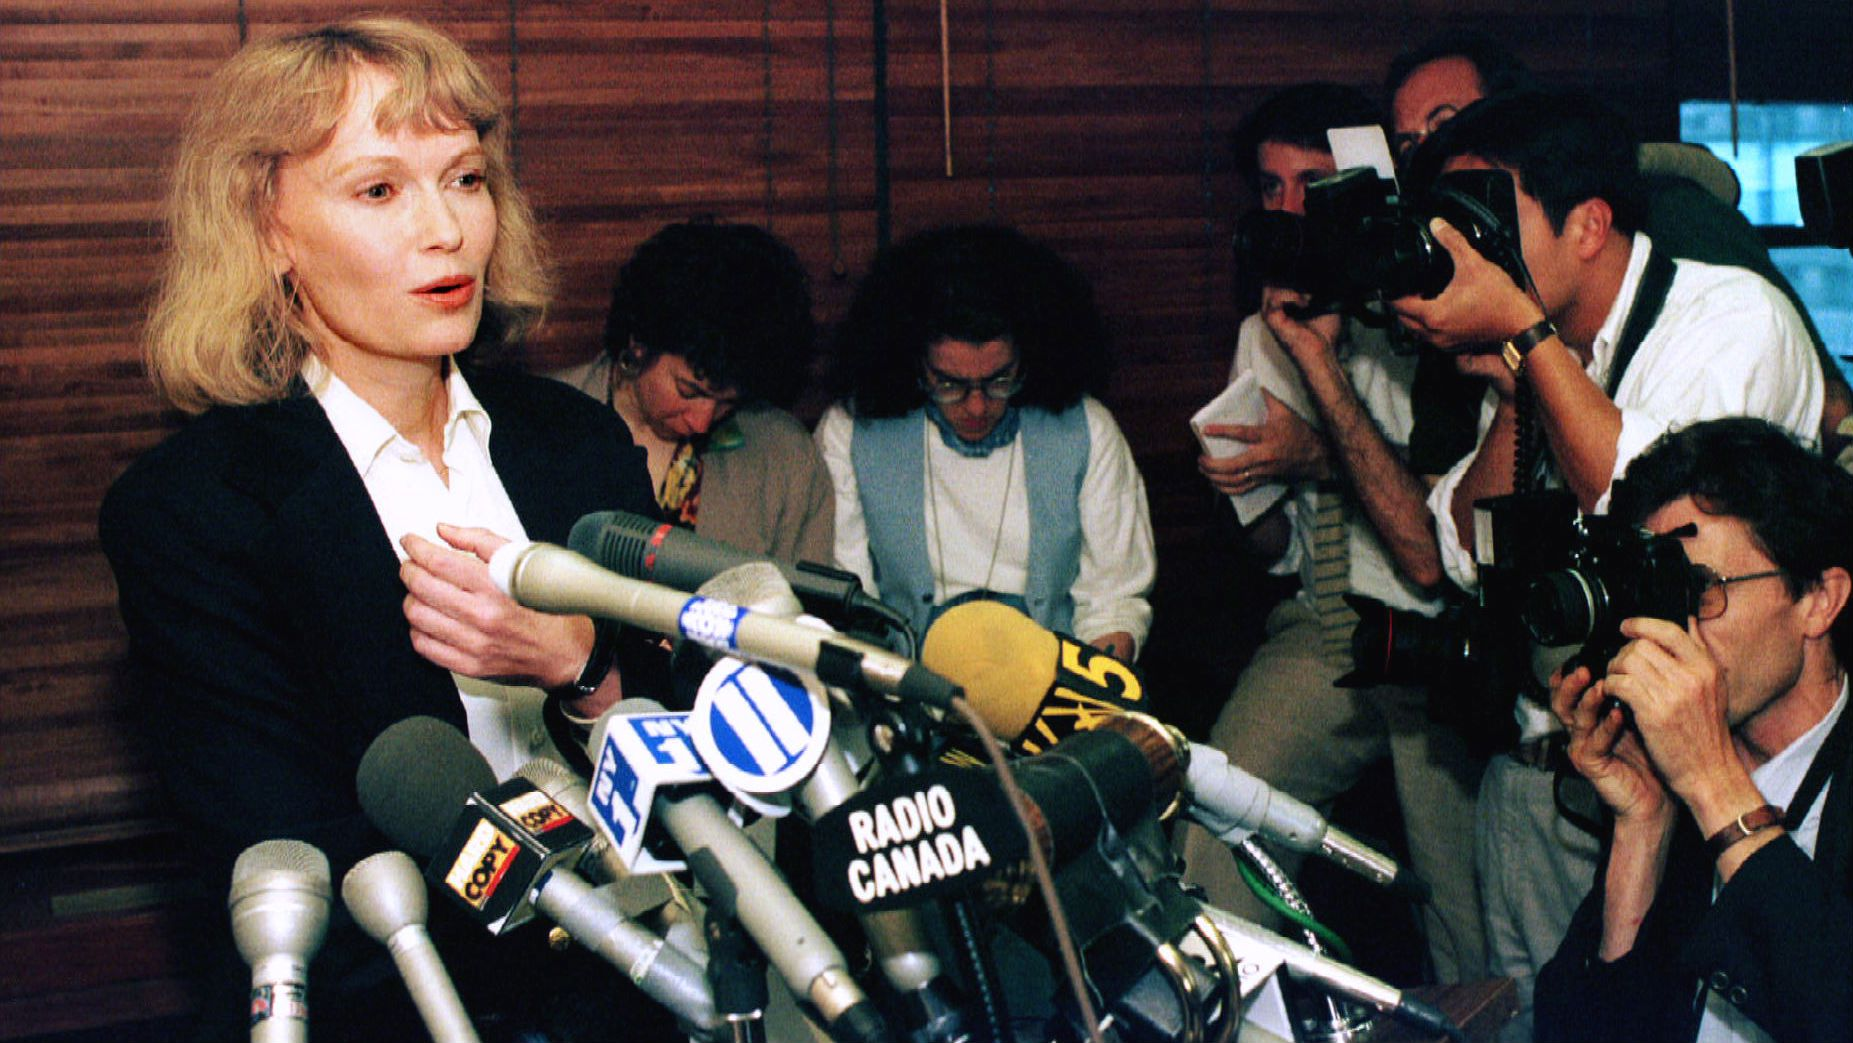 Actress Mia Farrow answers questions during a press conference in New York June 7, after being awarded custody of her three children with estranged lover Woody Allen. The couple who was together for almost 13 years was engaged in a bitter custody battle for adopted daughter Dylan, 7, adopted son Moses, 15, and biological son Satchel, 5